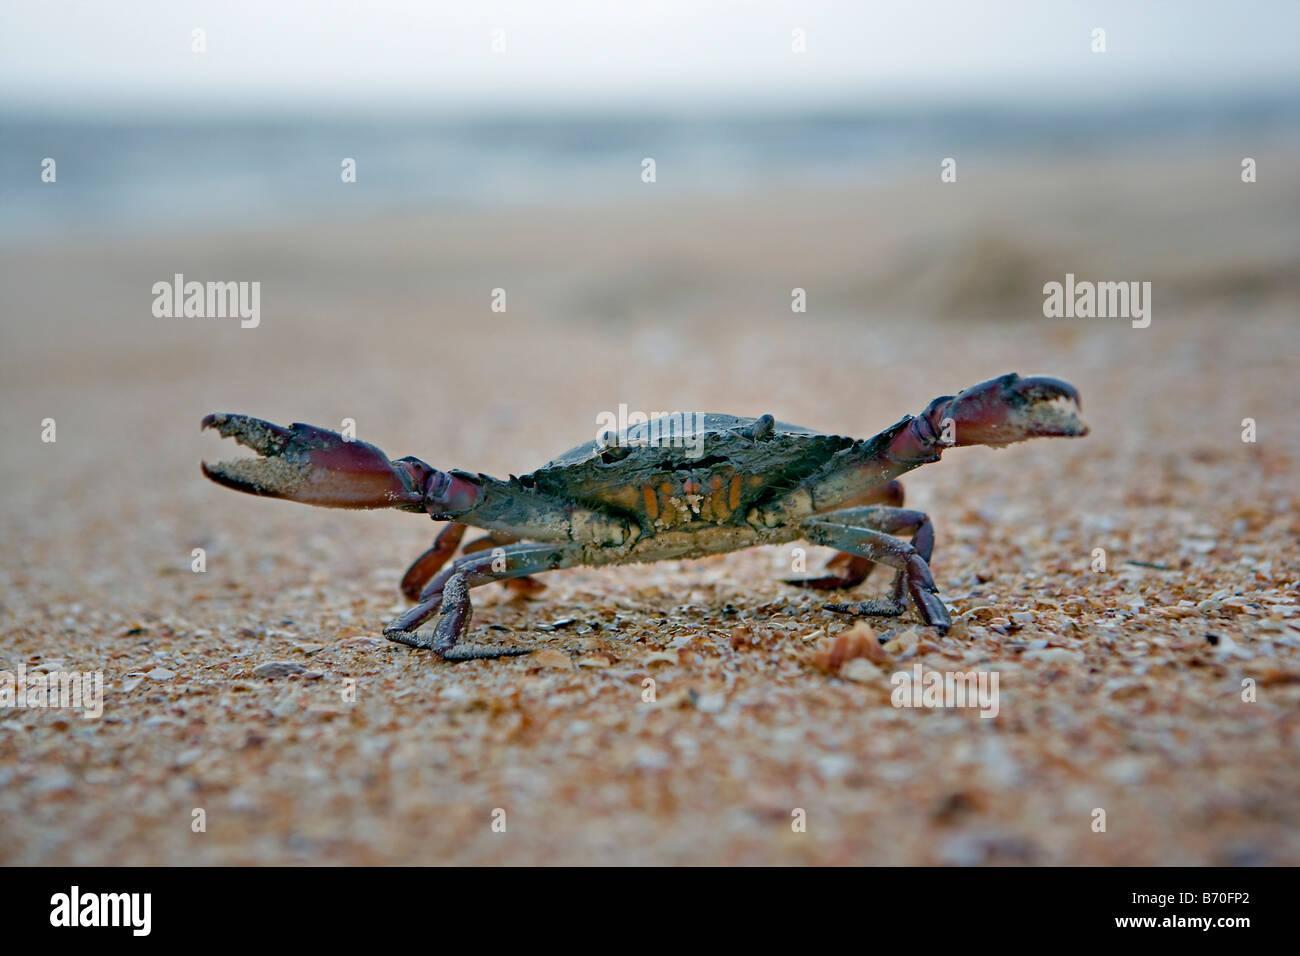 Suriname, Matapica National Park. Crab in defensive position. - Stock Image